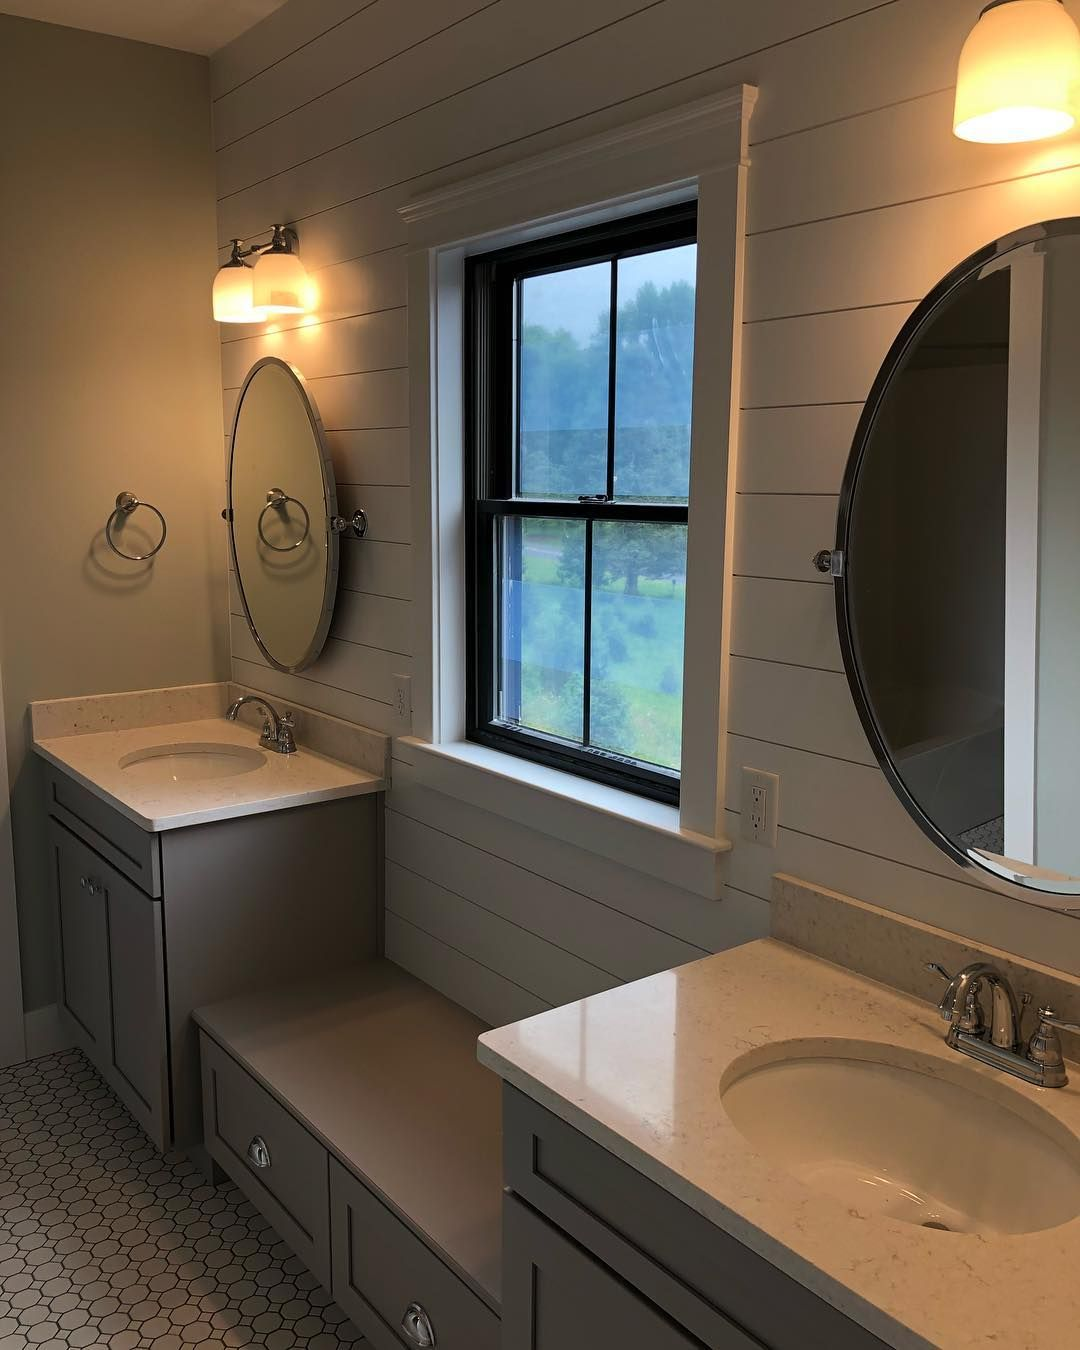 Jack And Jill Bath Complete Potterybarn Kensington Pivot Oval Mirror In Large And Me Modern White Bathroom Modern Master Bathroom Jack And Jill Bathroom